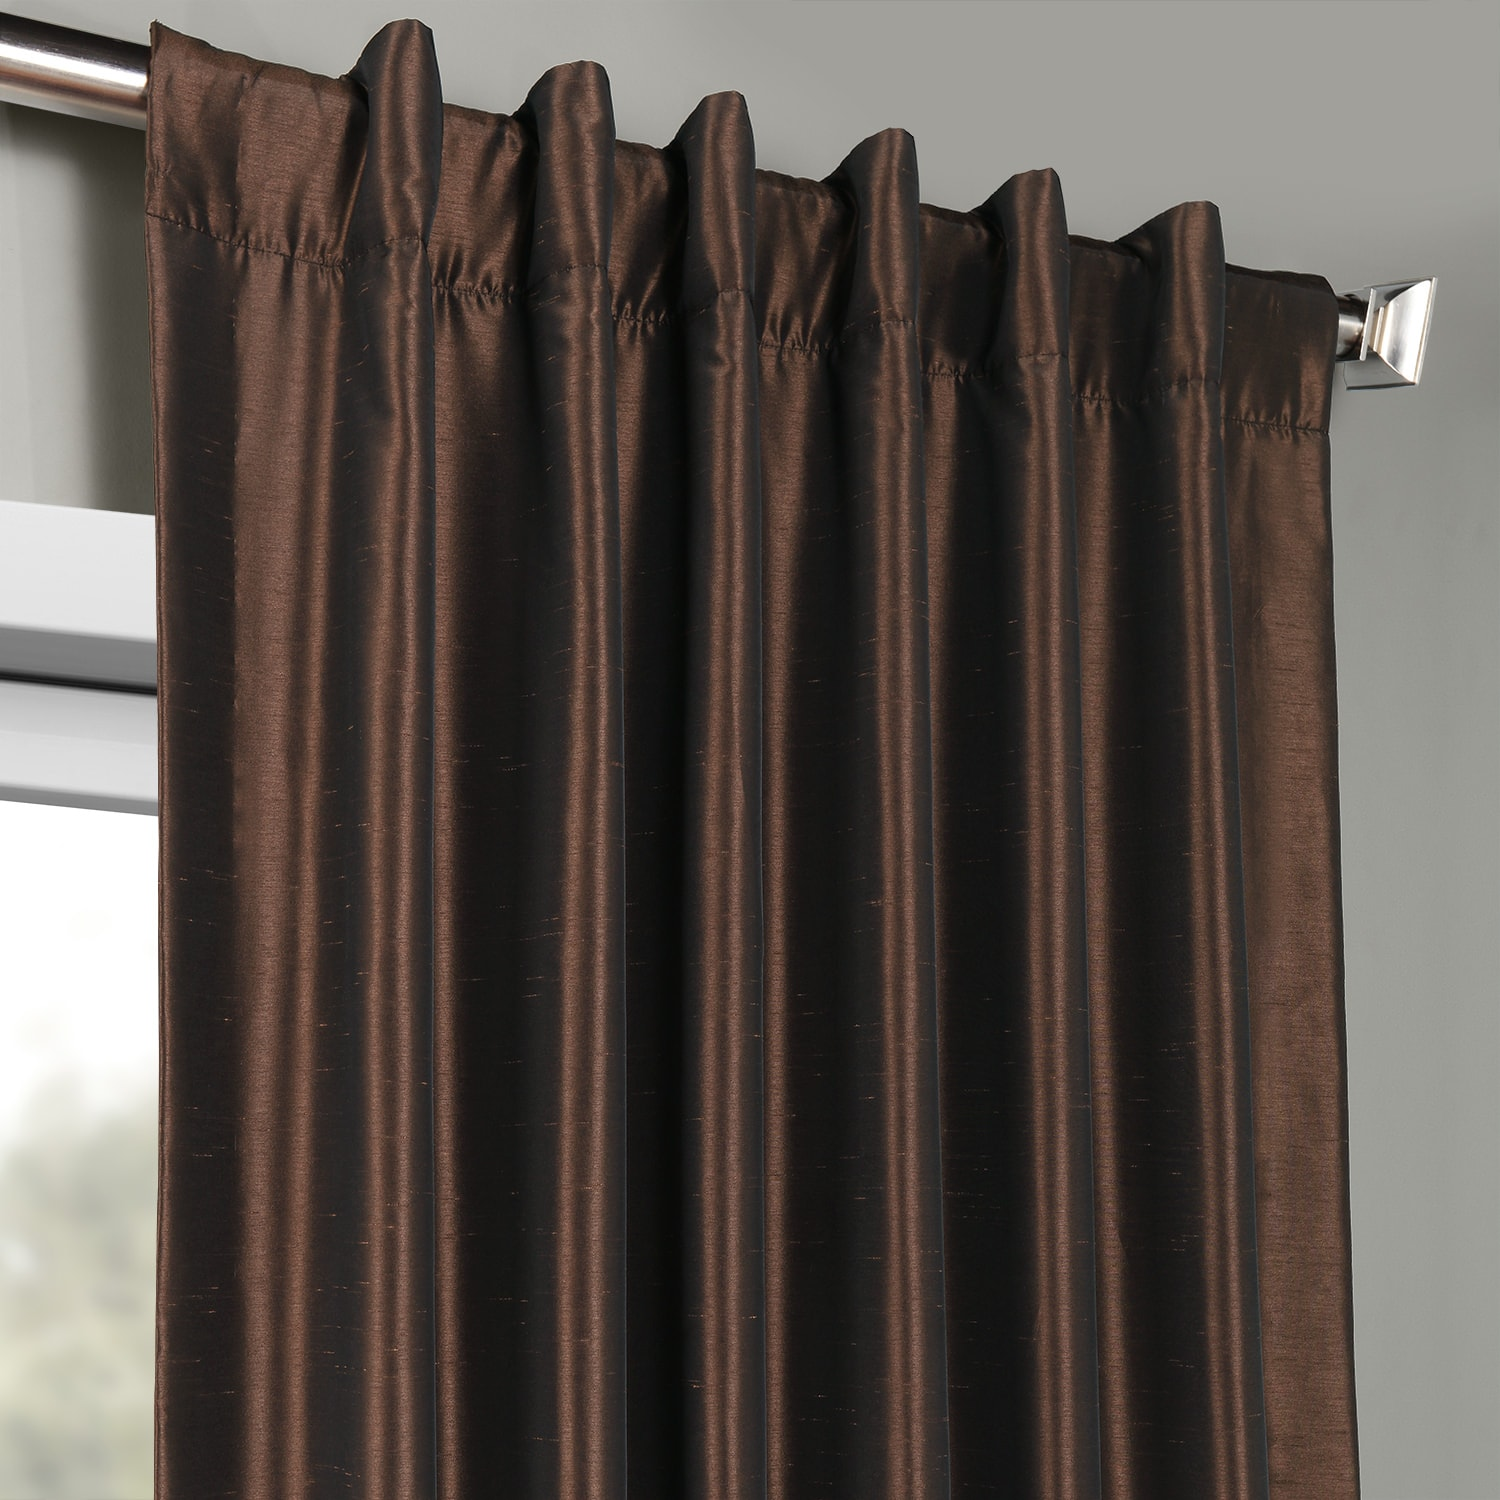 3 Piece Faux Cotton Espresso Brown Kitchen Window Curtain: Coffee Bean Vintage Textured Faux Dupioni Silk Curtains